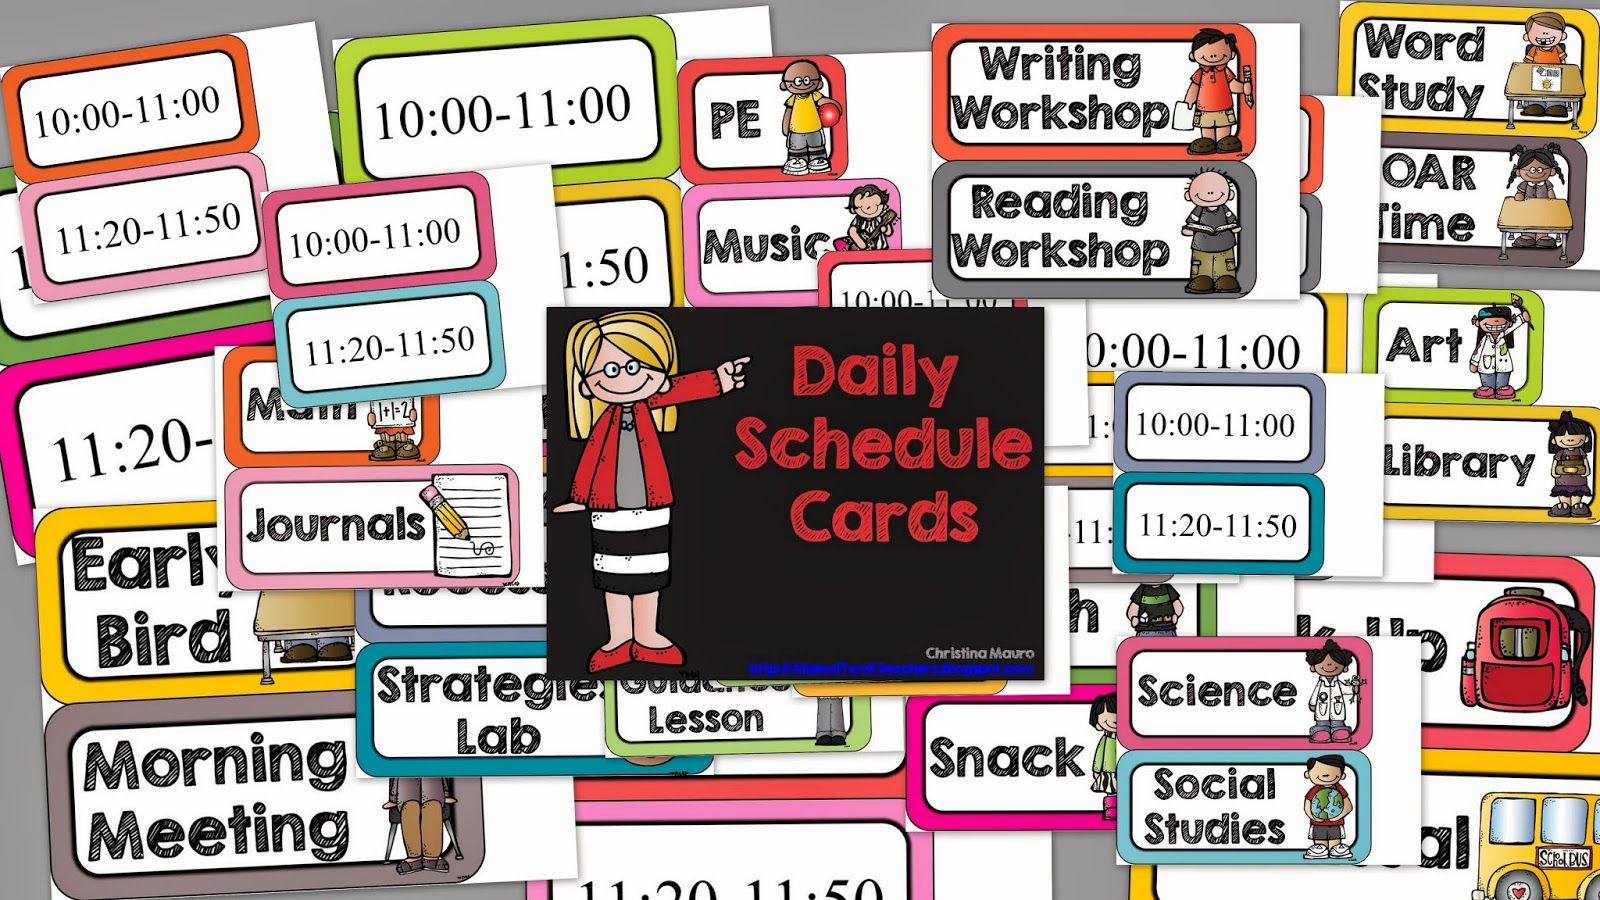 http://www.teacherspayteachers.com/Product/Daily-Schedule-Cards-Editable-Times-727318